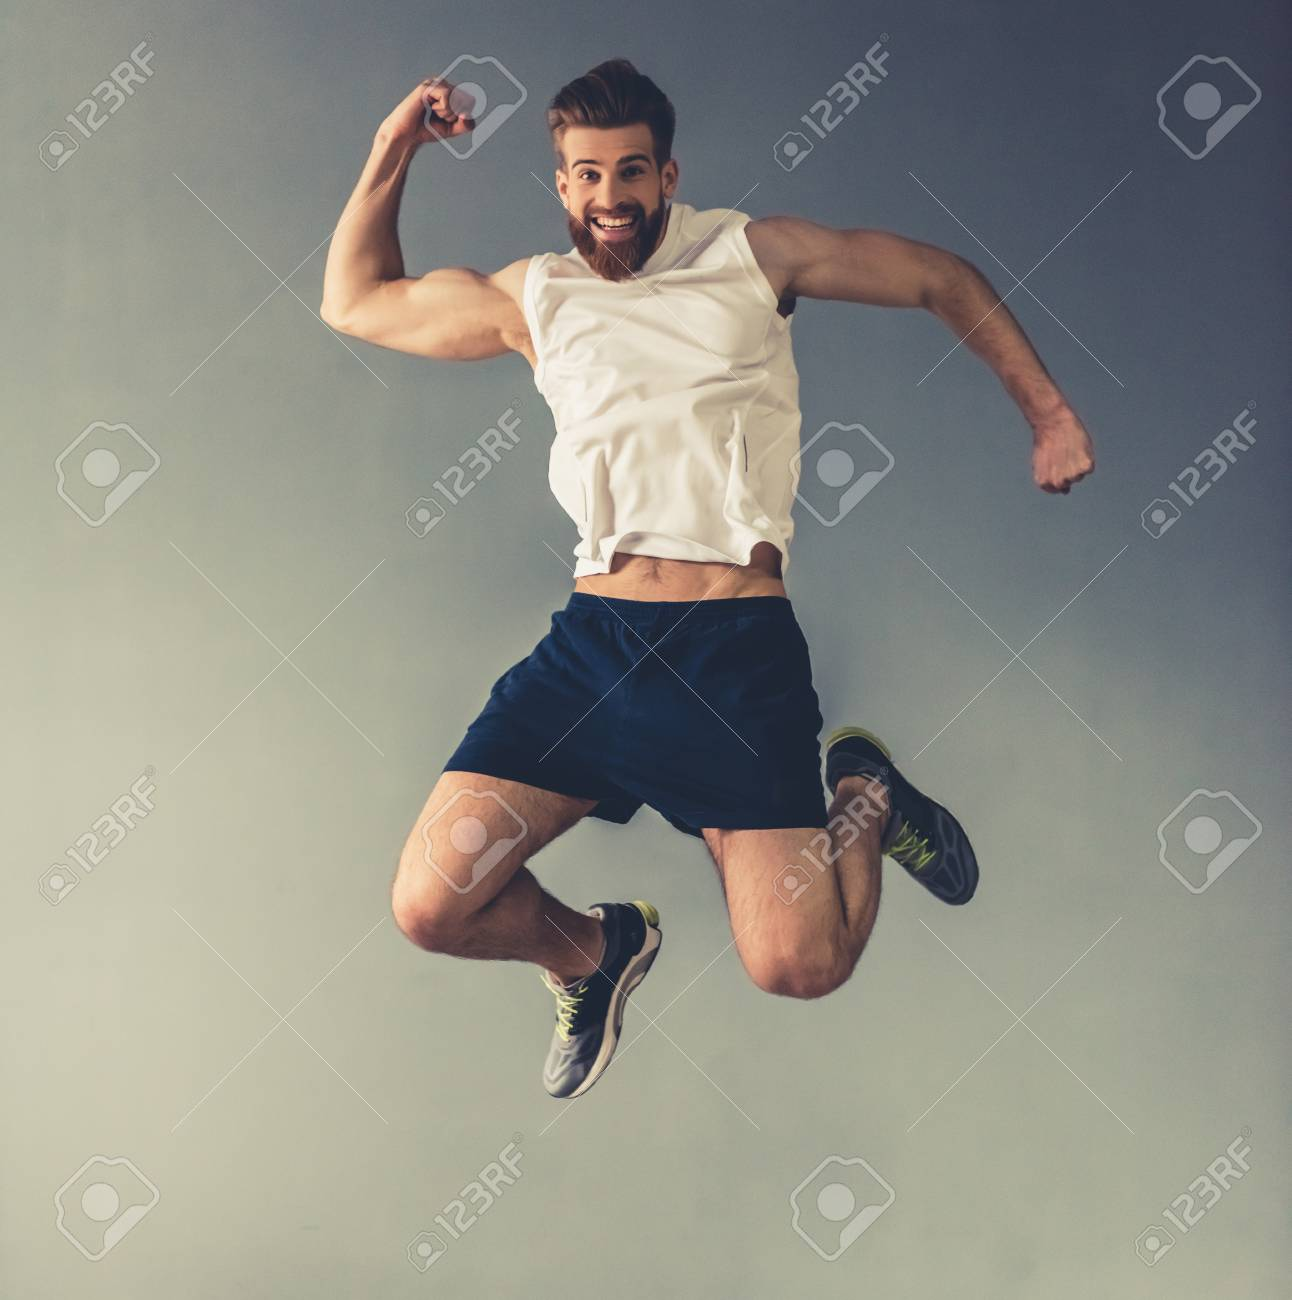 Handsome young bearded sportsman is showing muscles, jumping and smiling, on gray background - 79241600